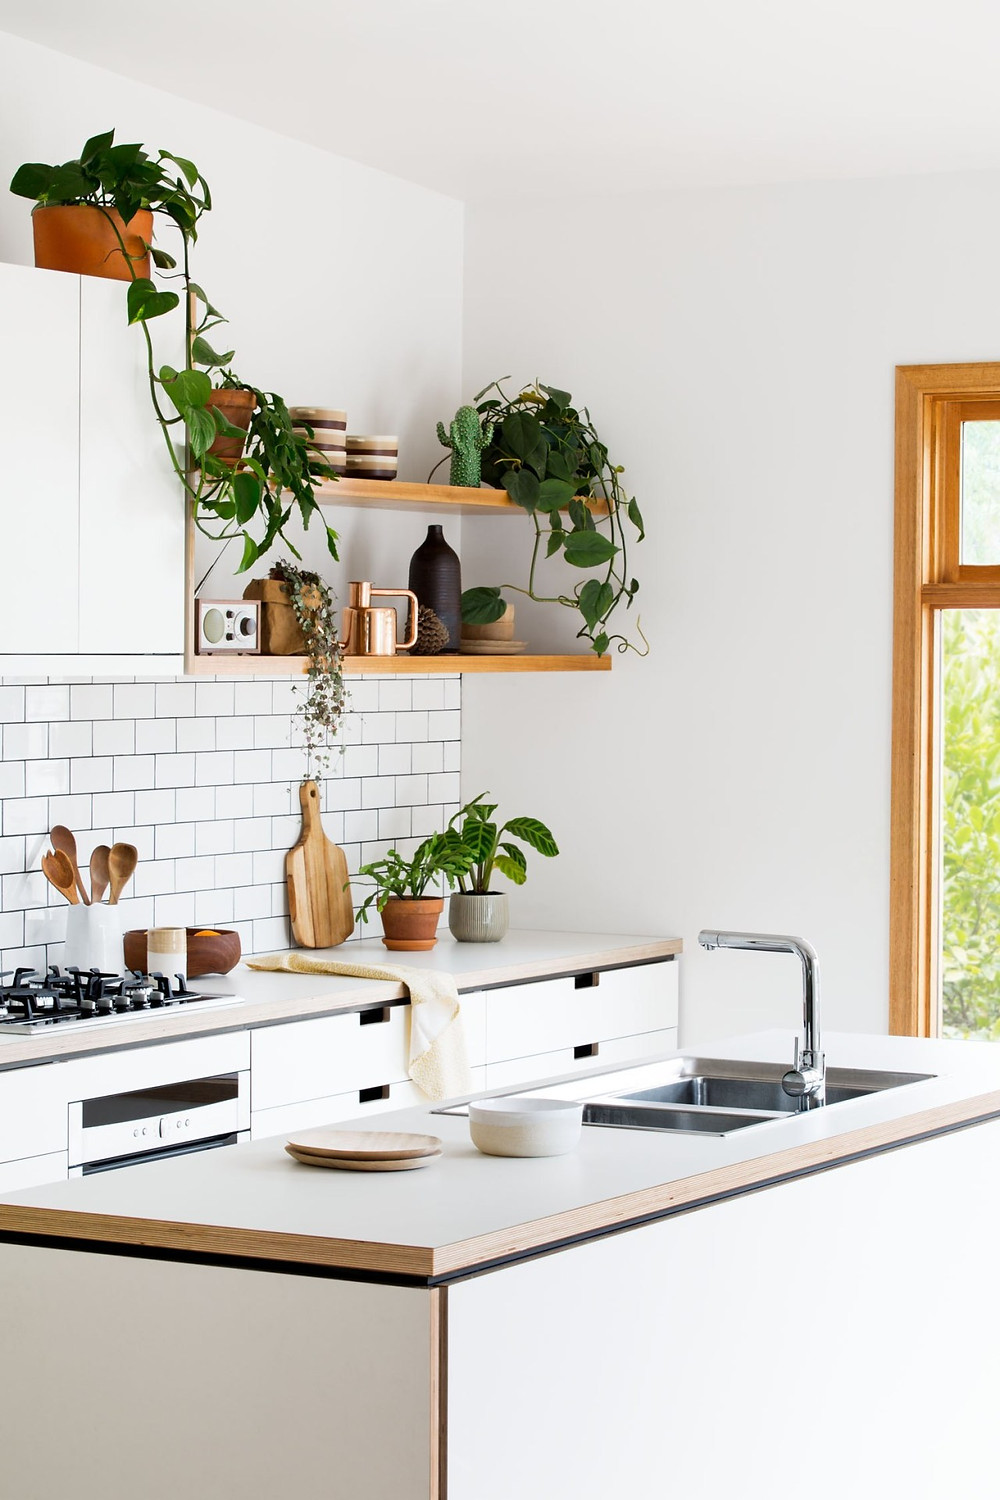 Organised kitchen with plants - Homefulness